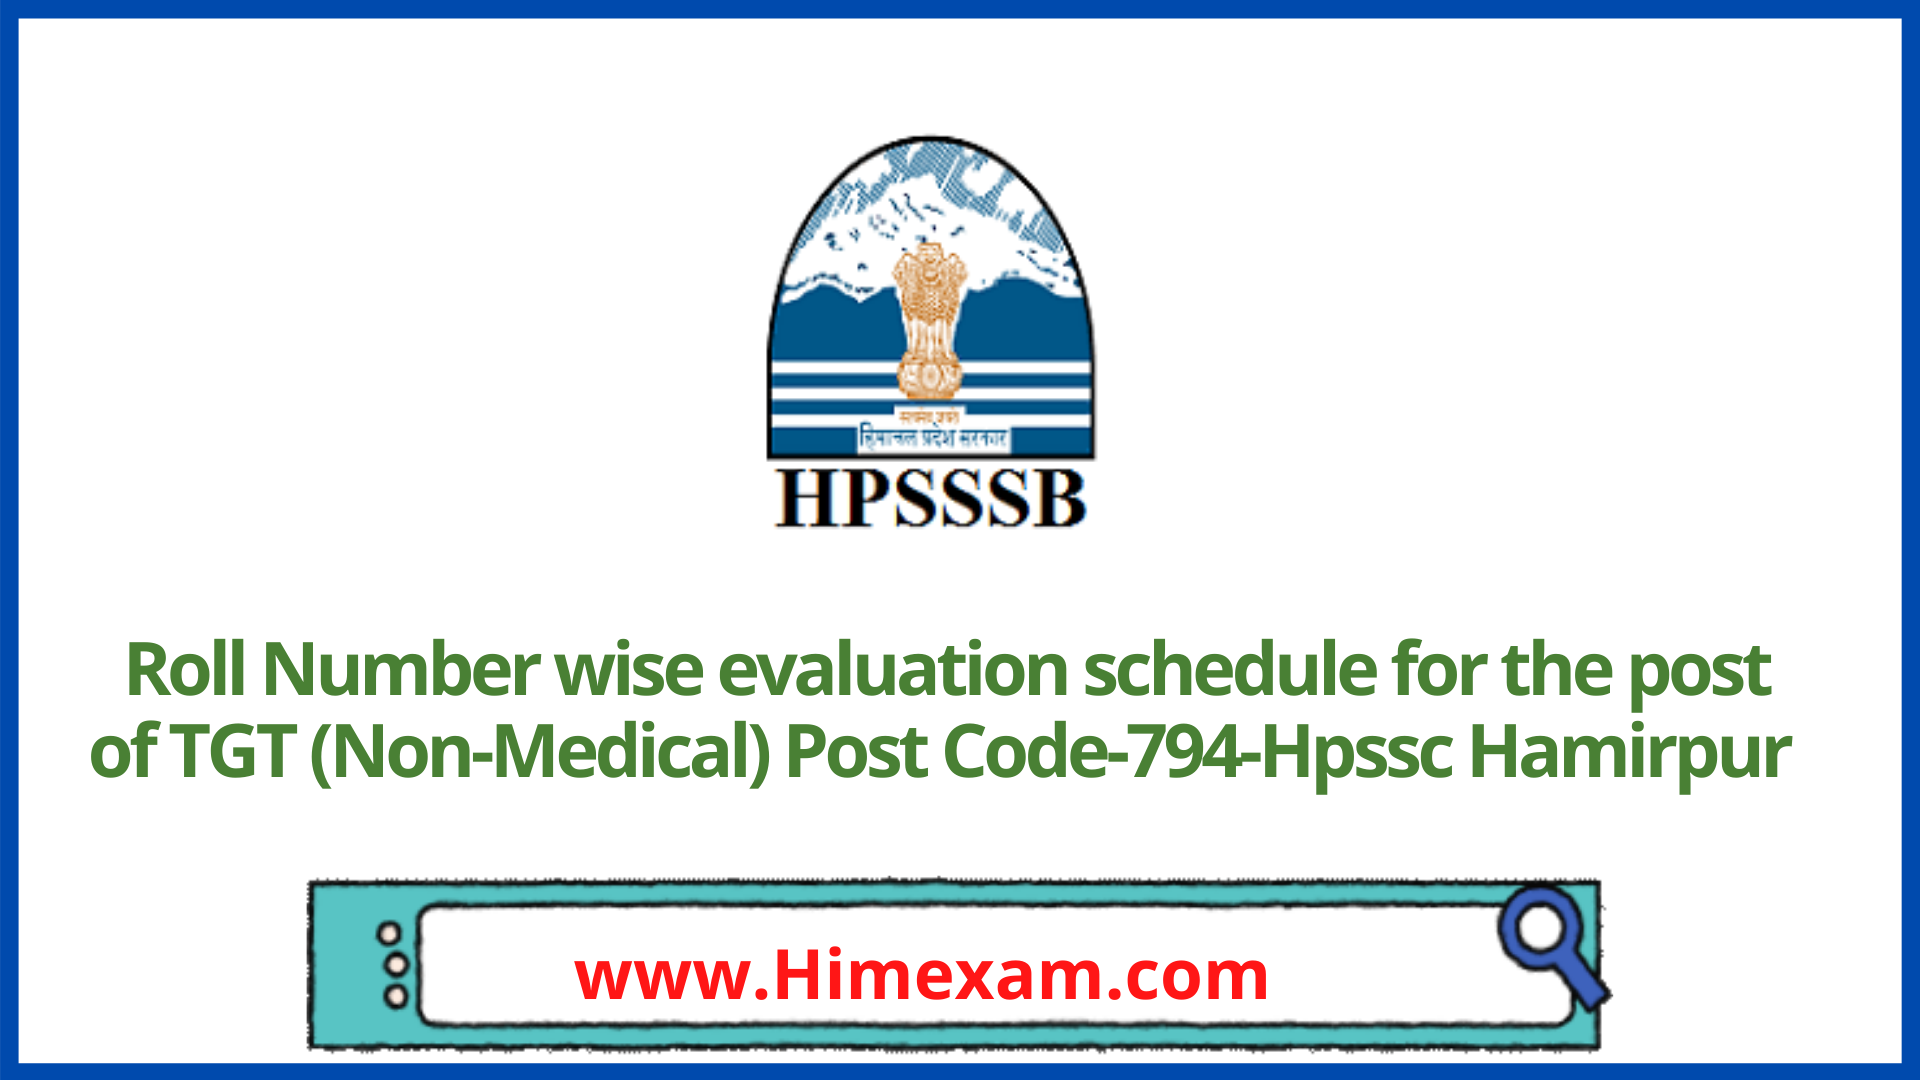 Roll Number wise evaluation schedule for the post of TGT (Non-Medical) Post Code-794-Hpssc Hamirpur